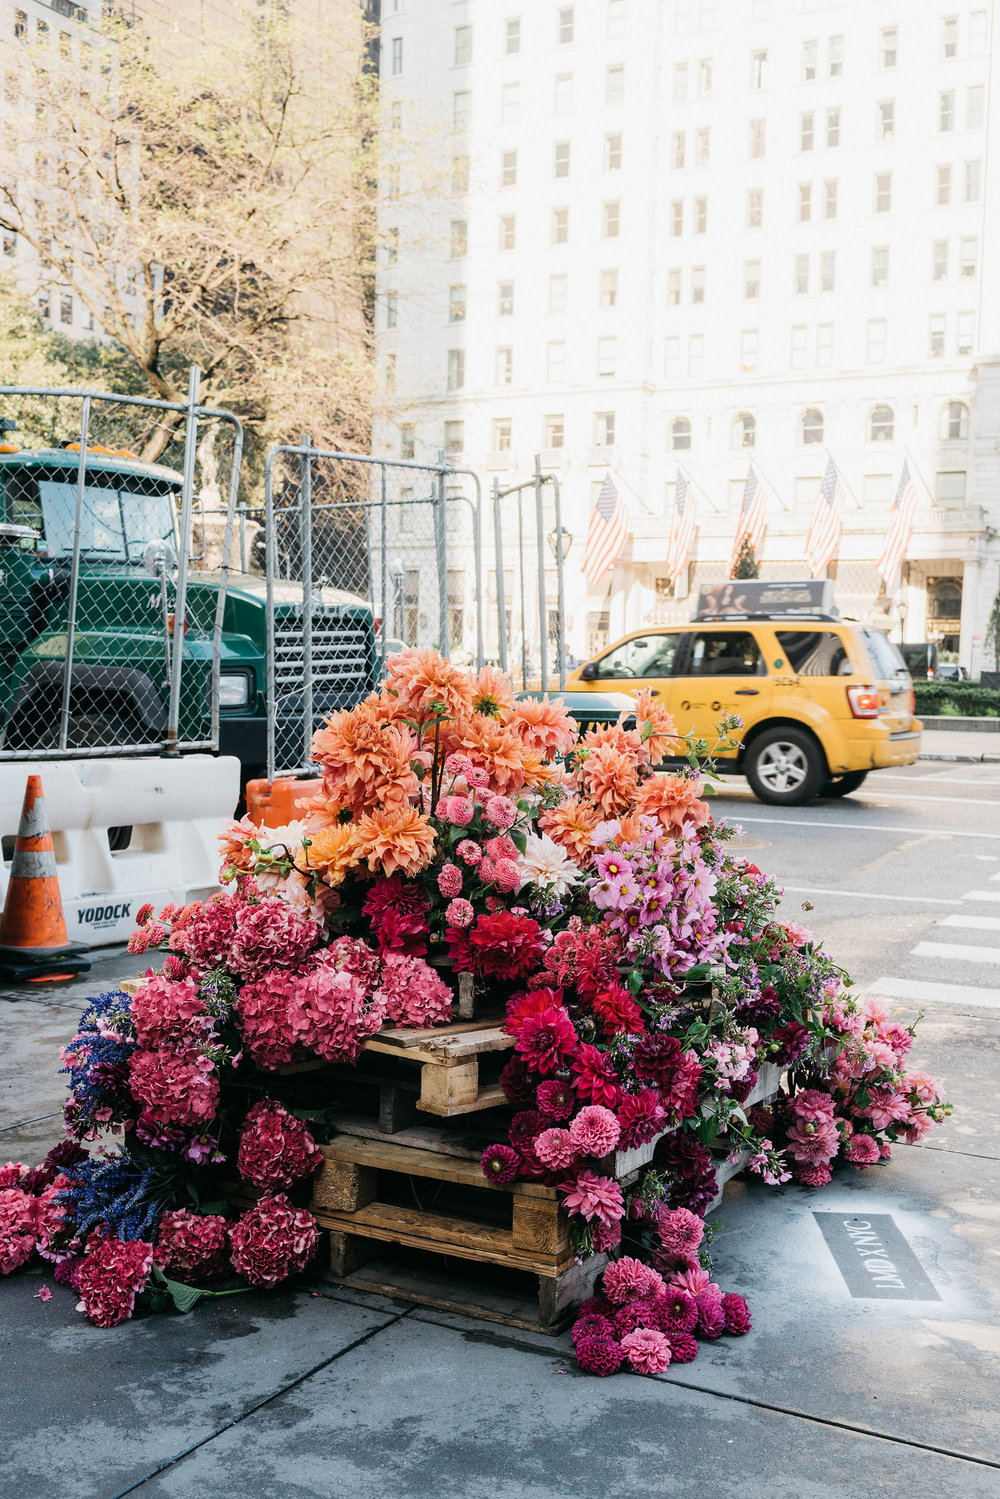 Farrow & Ball x Lewis Miller Design guerrilla style flower installations around the city, bringing beauty to unexpected city corners and construction sites.